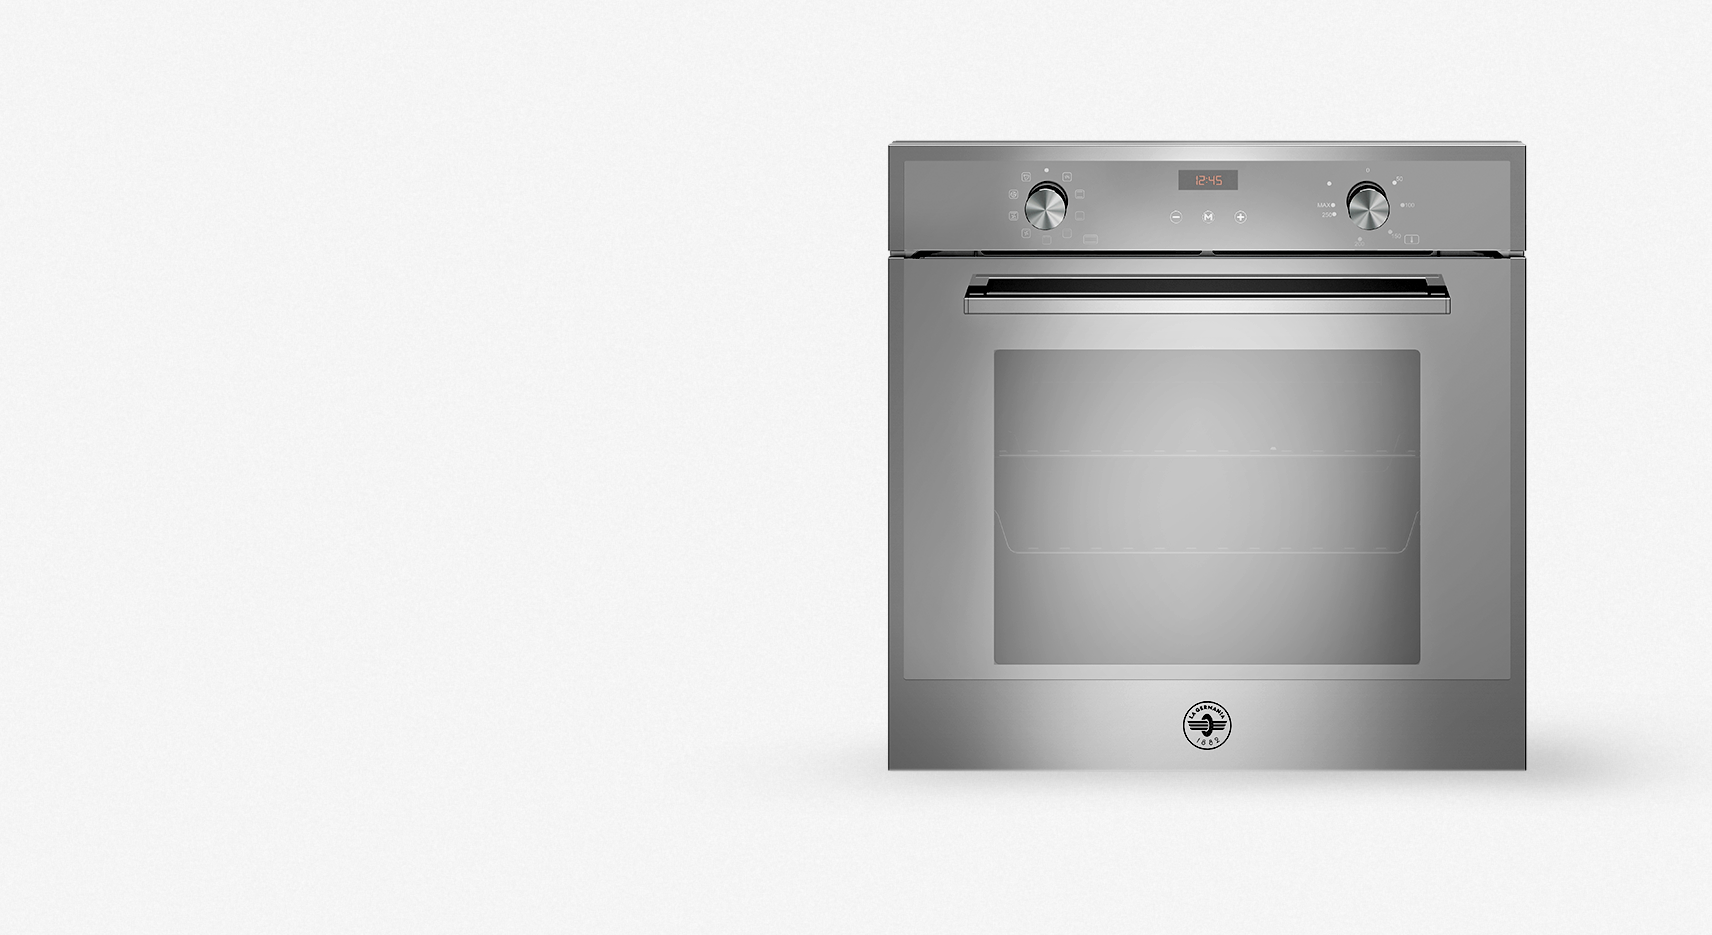 60 Electric Multifunction Built-in Oven <br>9 Settings and LED Display